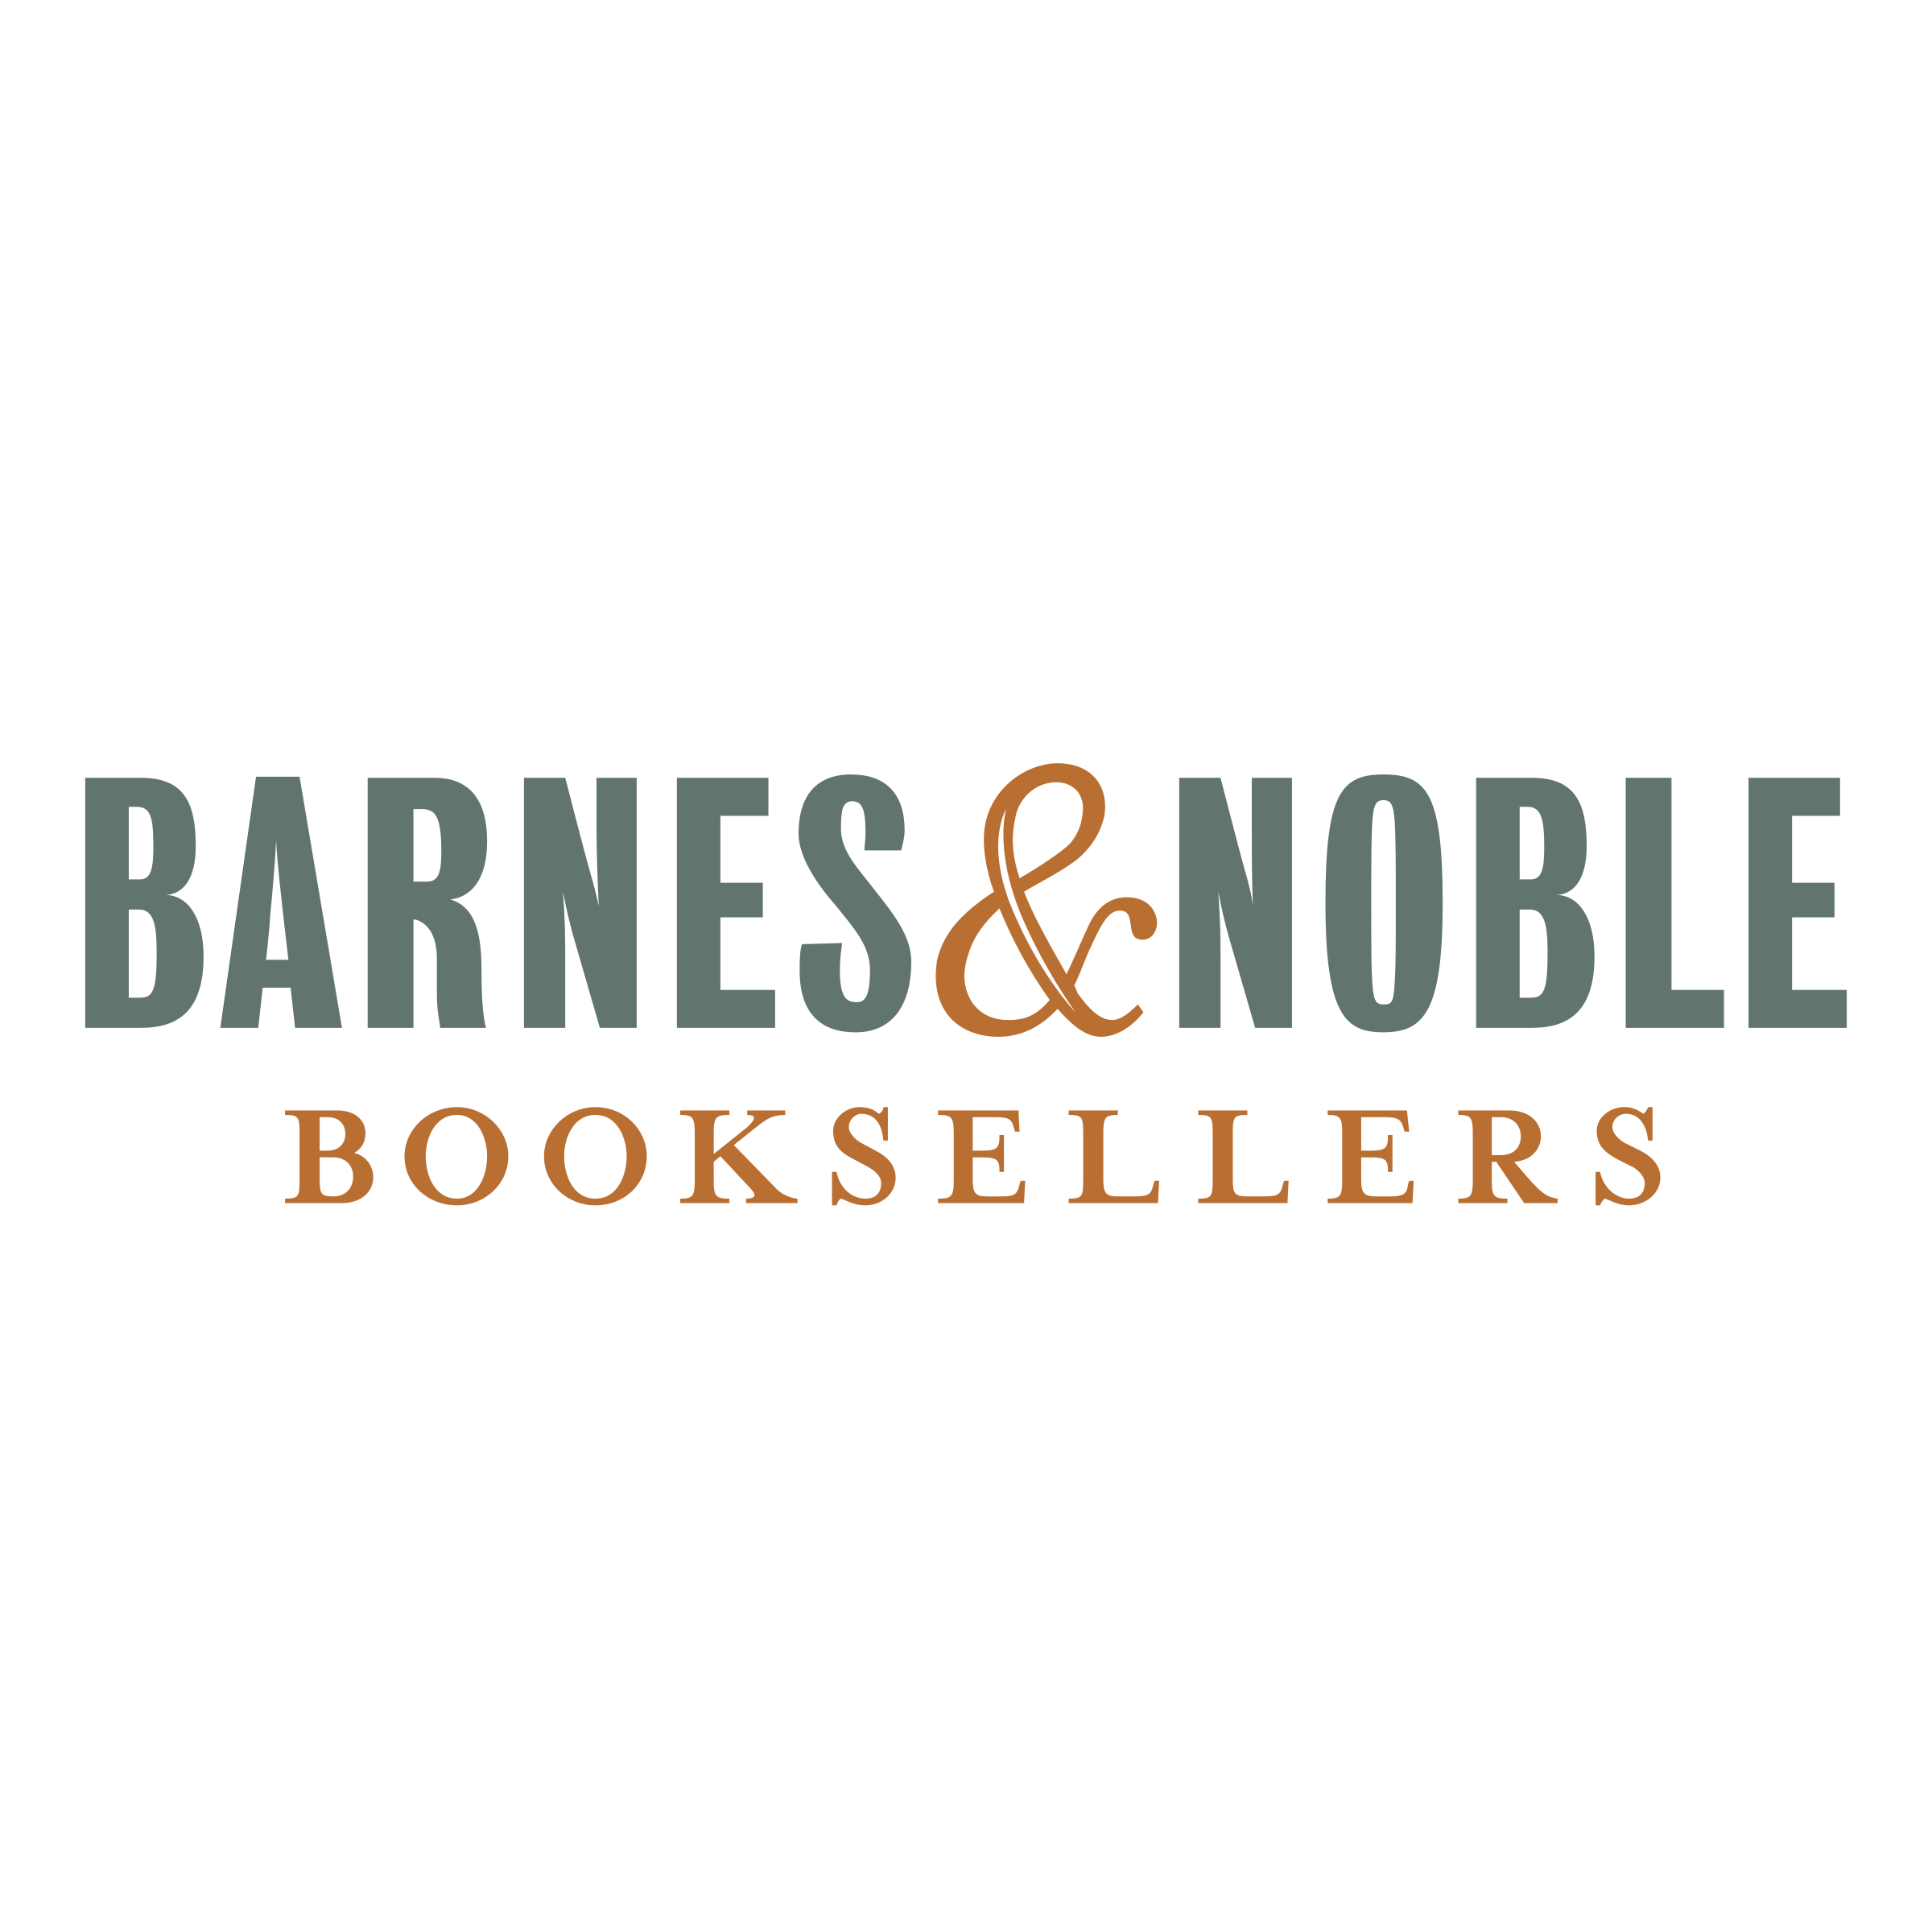 Barnes and noble logo png. Transparent svg vector freebie